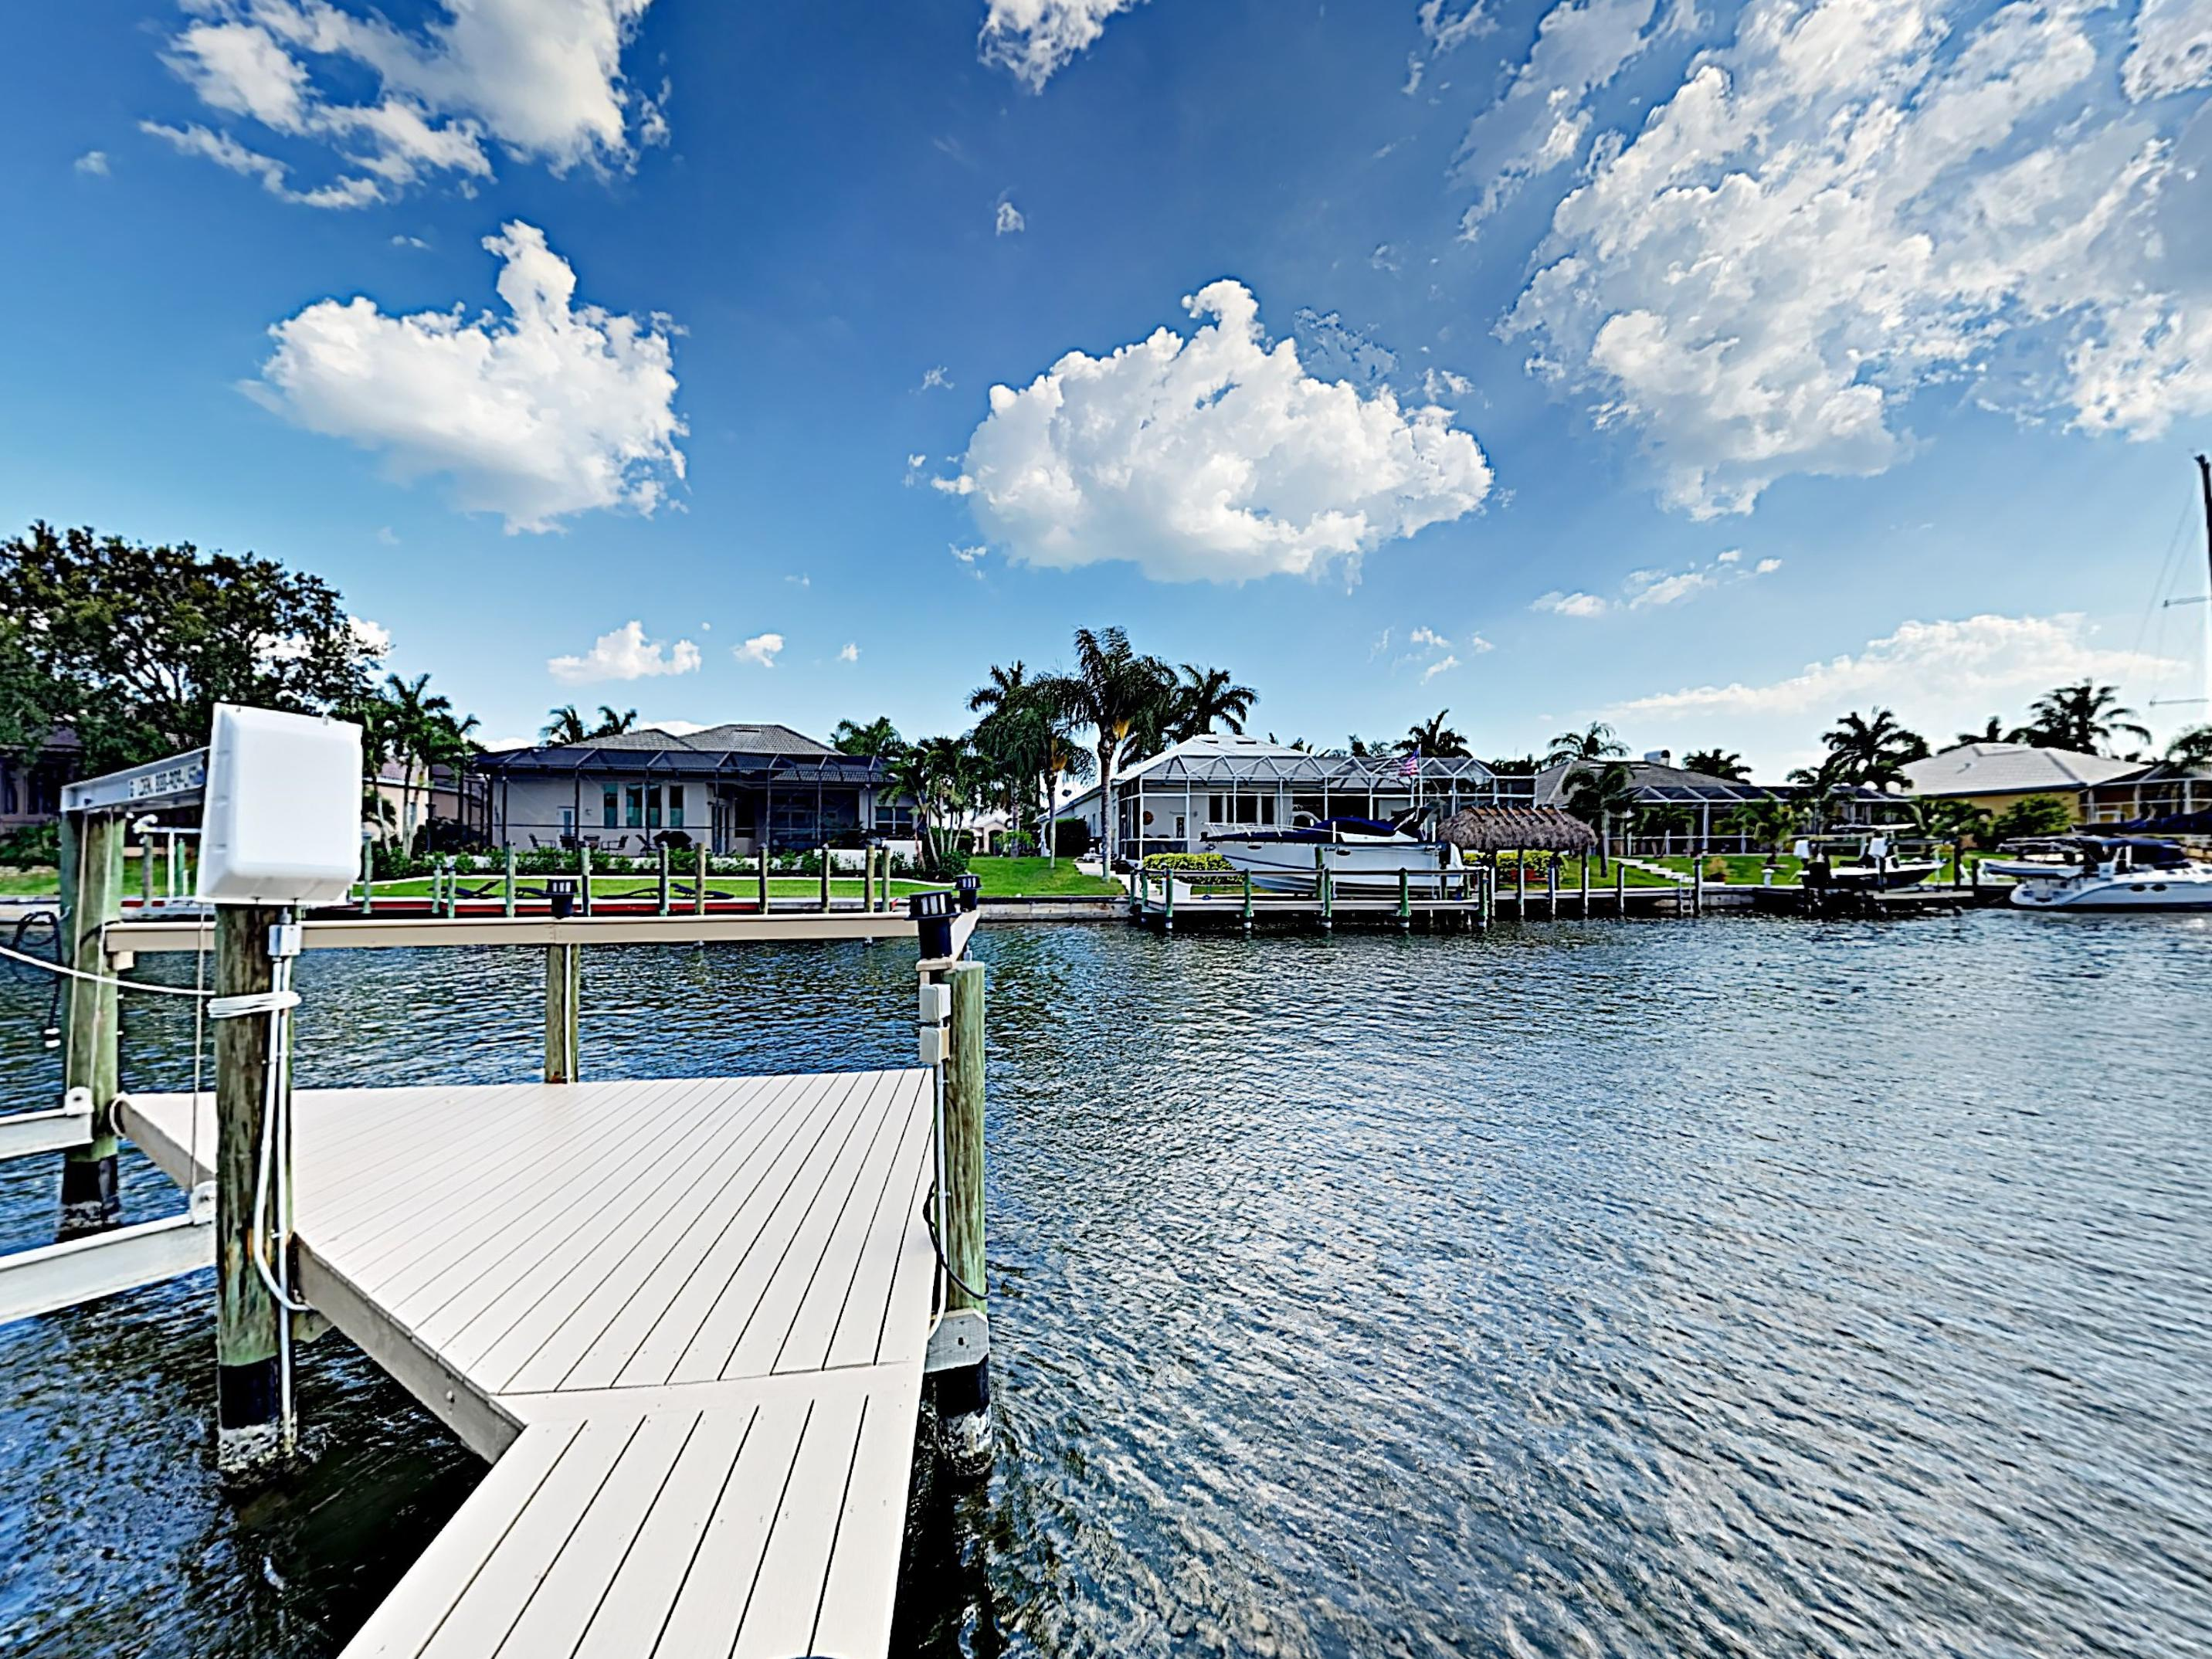 This prime location is convenient for water activities like boating, fishing, and paddle boarding.